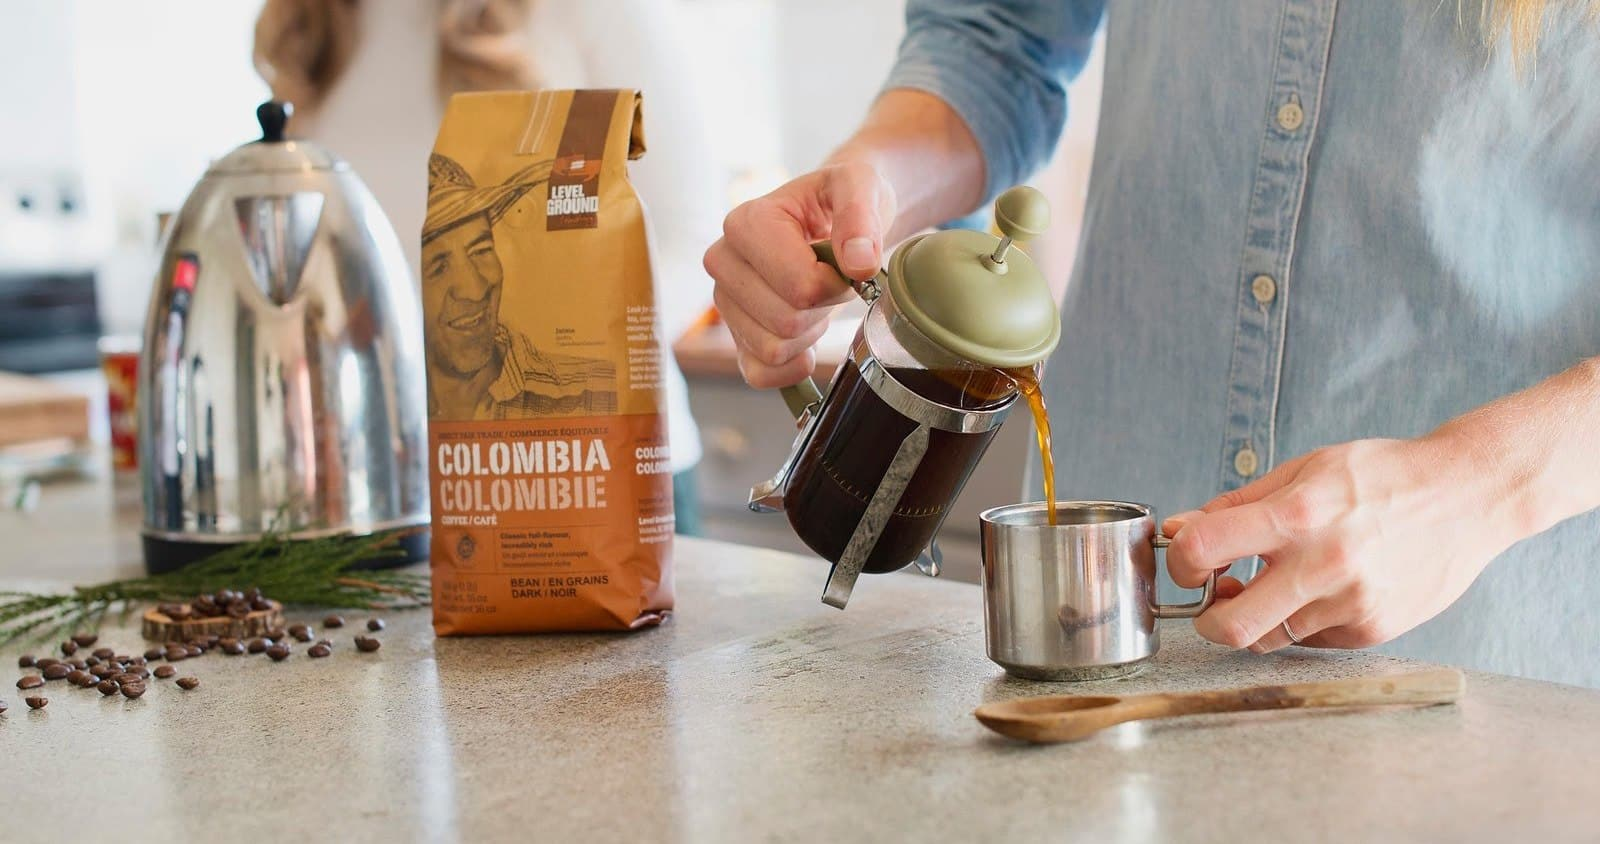 Where to Drink the Best Coffee in Canada 2020